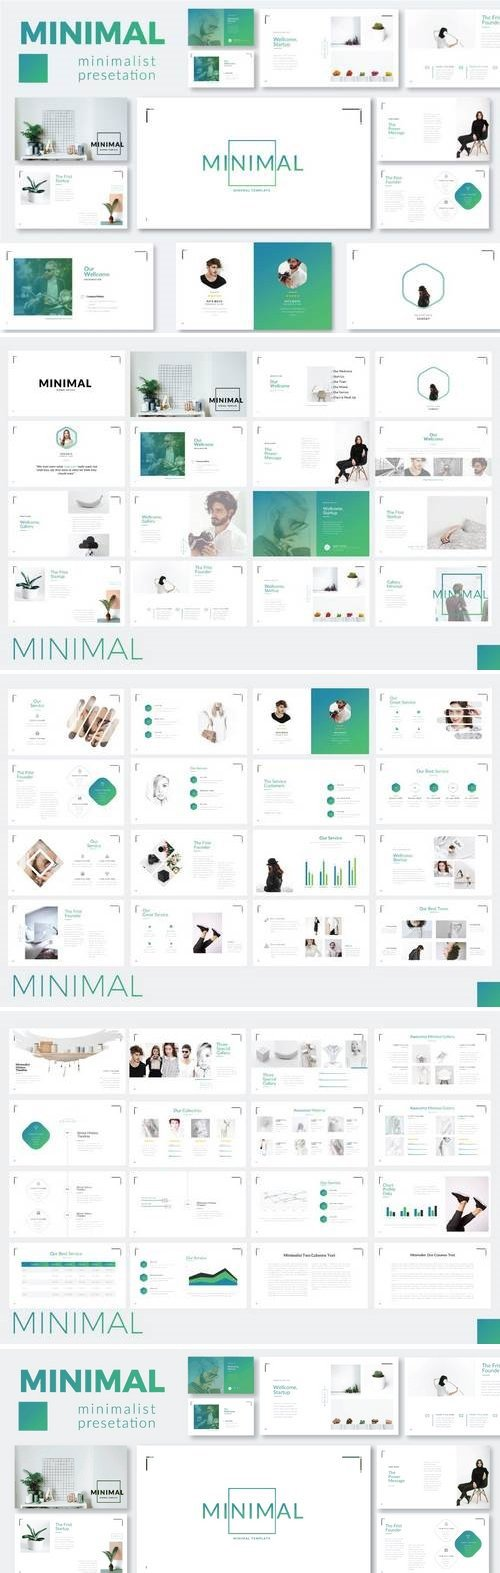 Minimalist - Powerpoint, Keynote, Google Sliders Templates